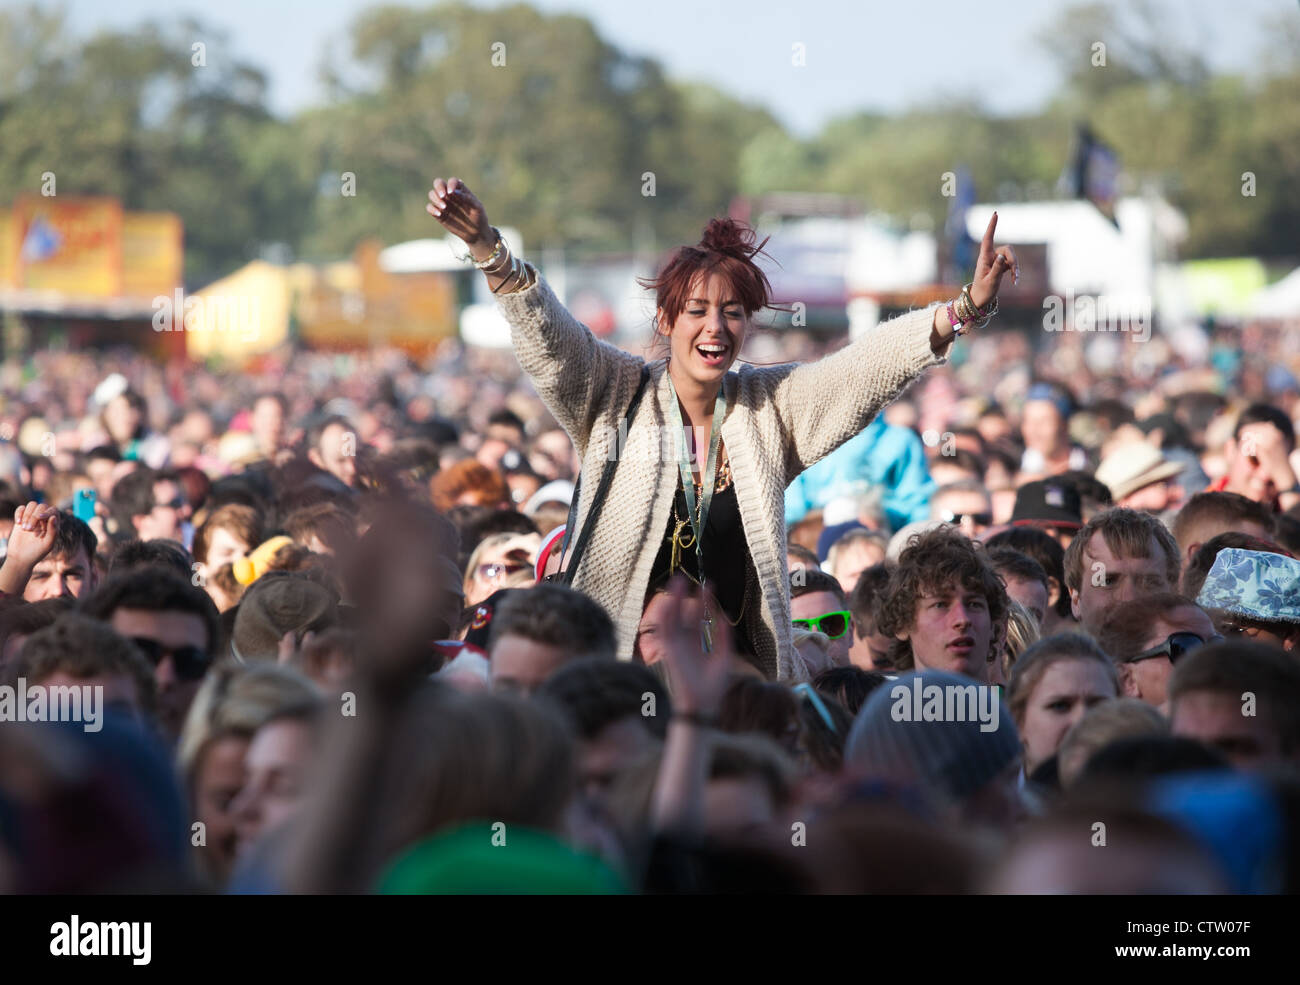 Crowd at a Music Festival - Stock Image